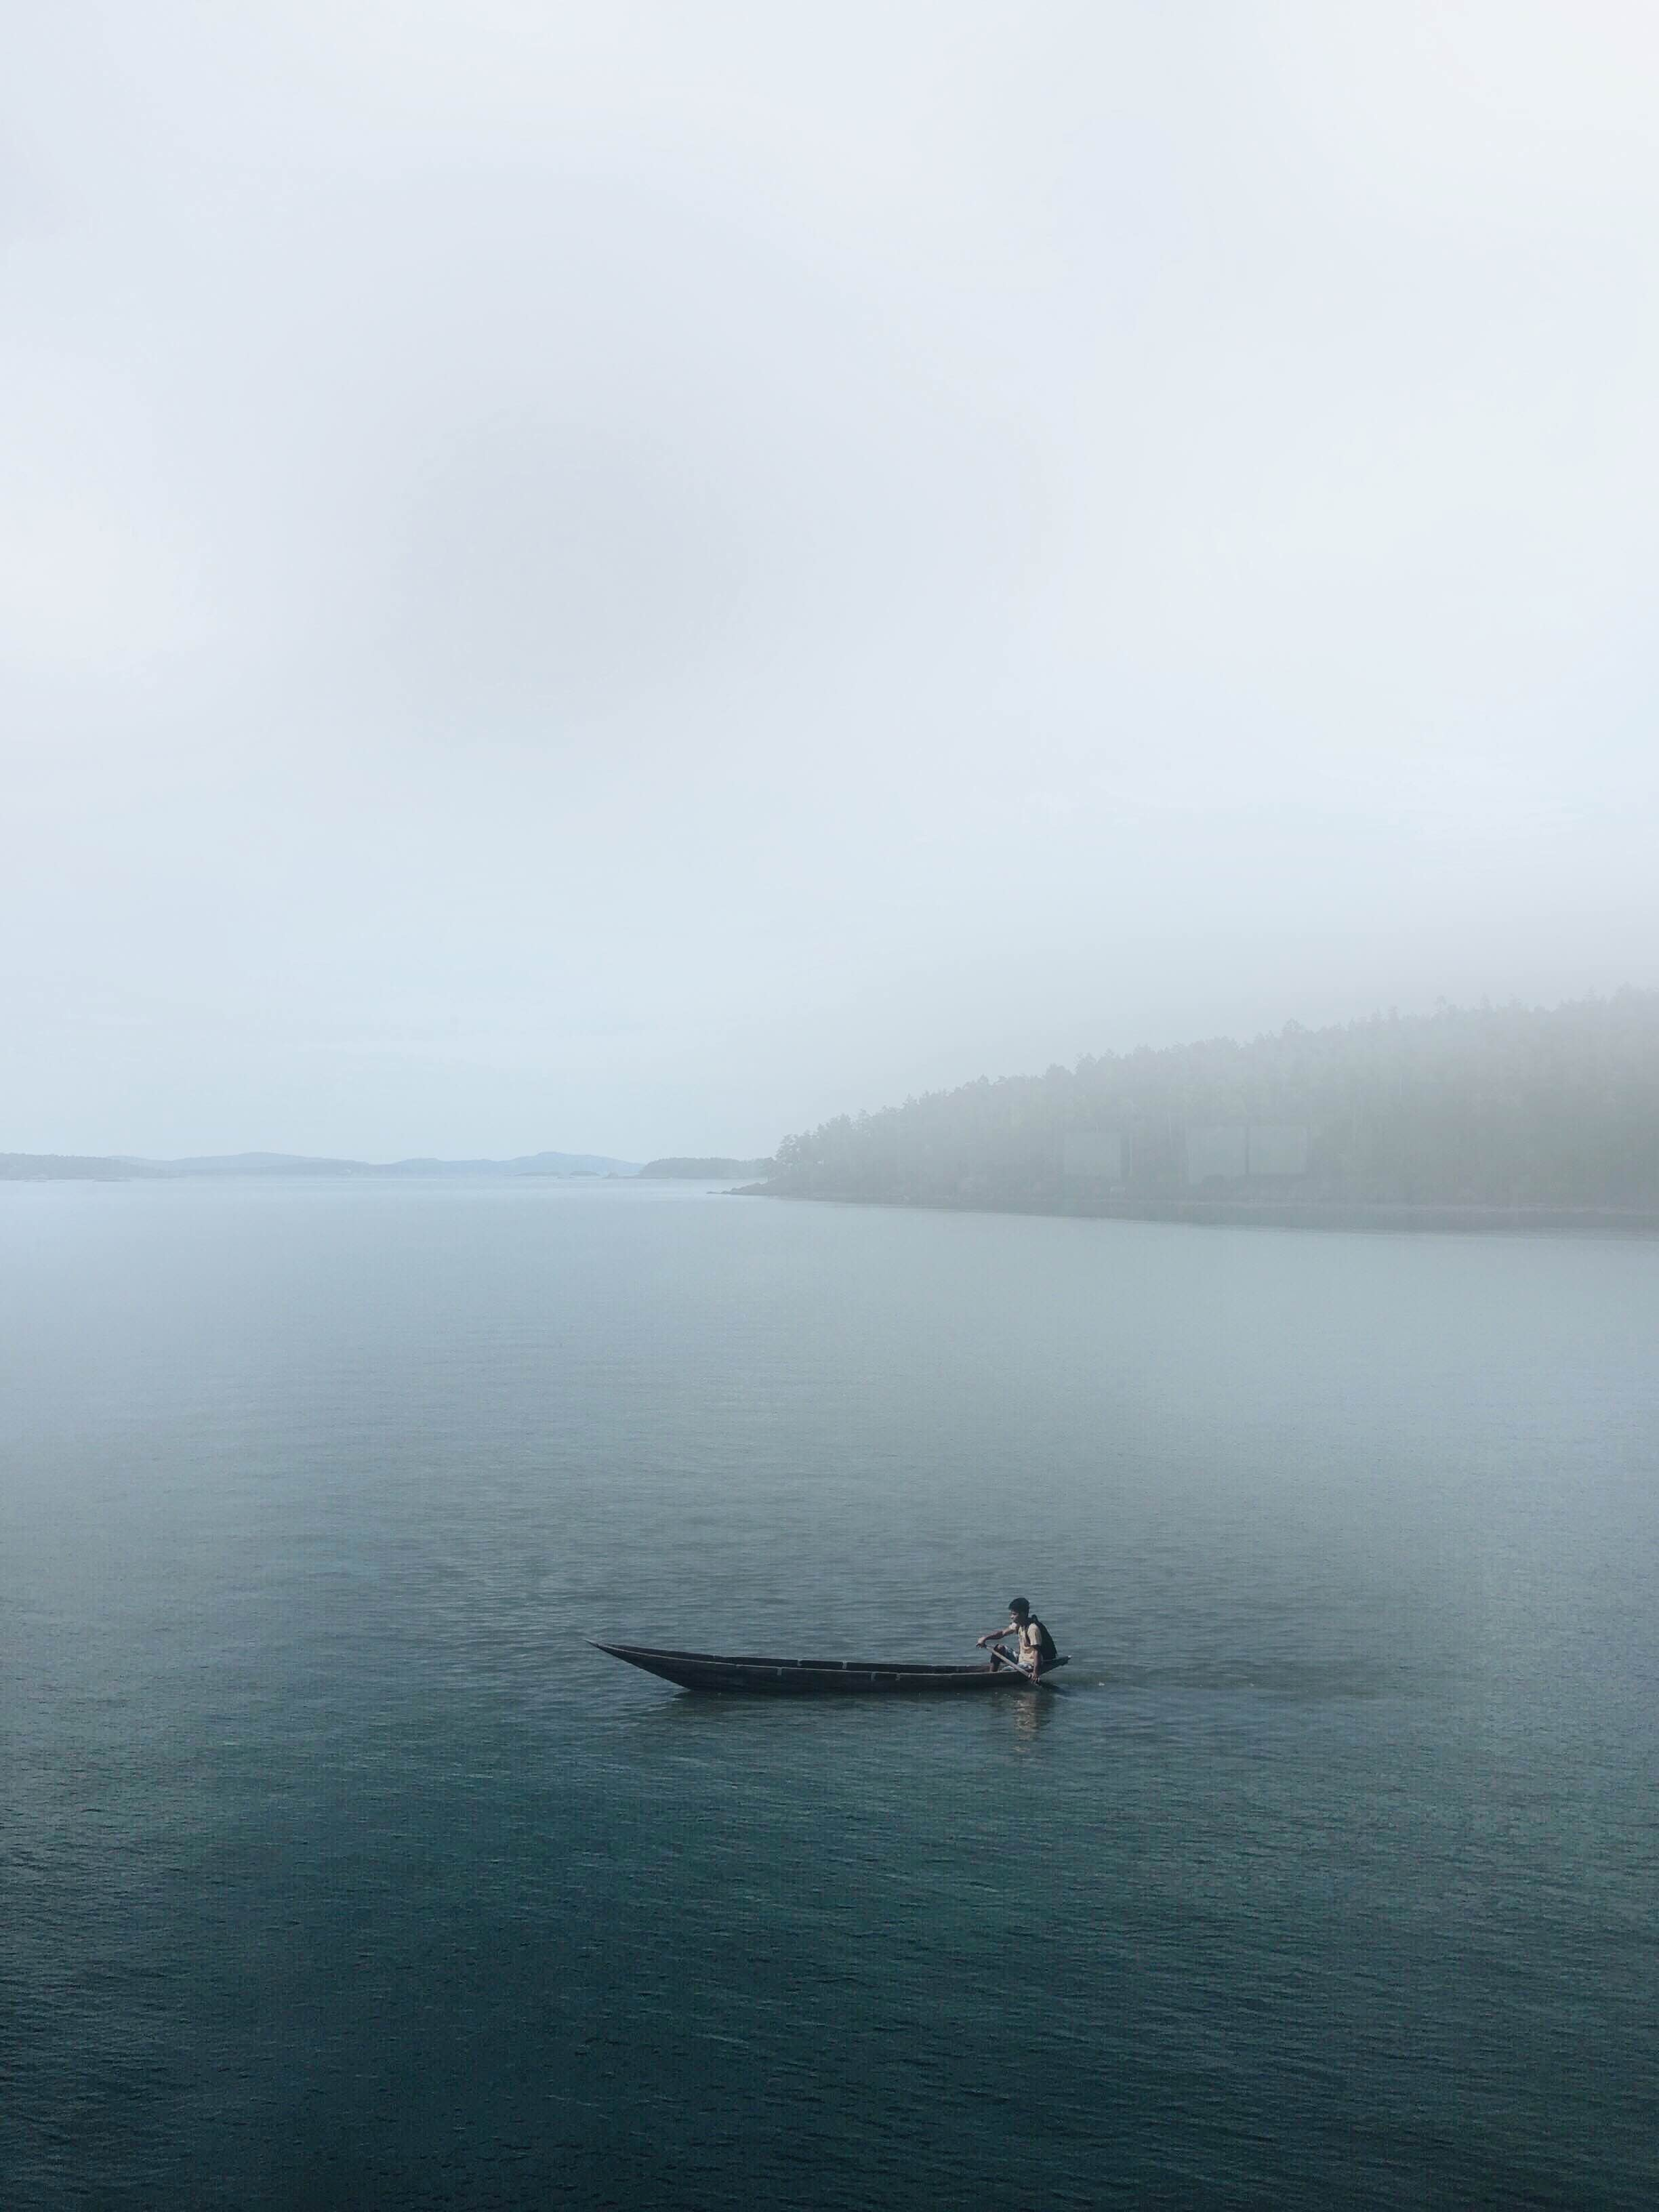 photo of person on canoe